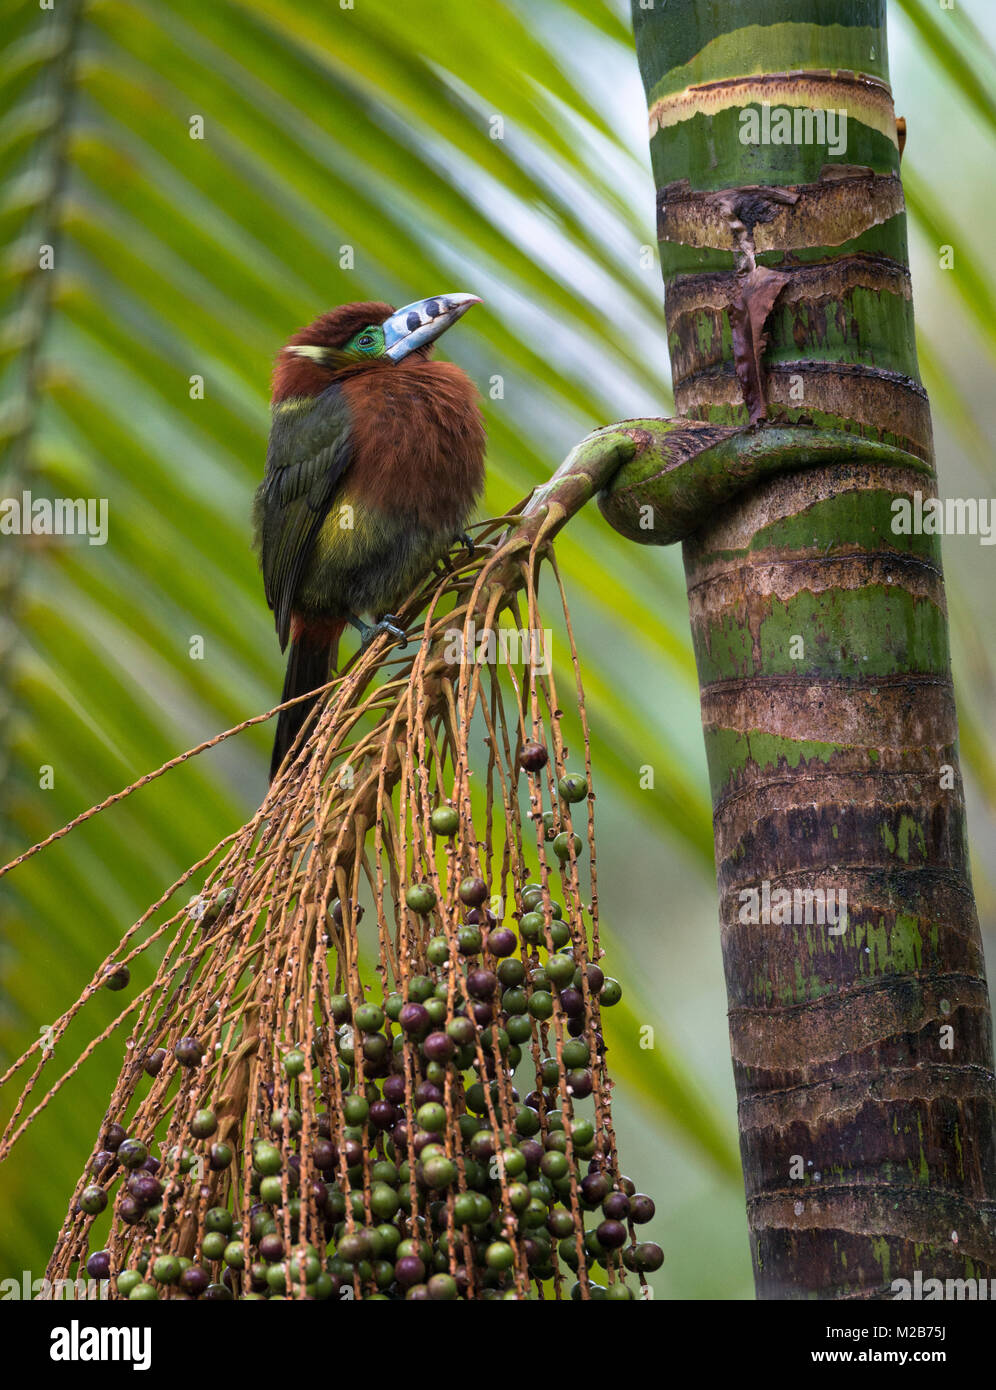 A Spot-billed Toucanet (Selenidera maculirostris) on a Palmito tree in the Atlantic Rainforest - Stock Image